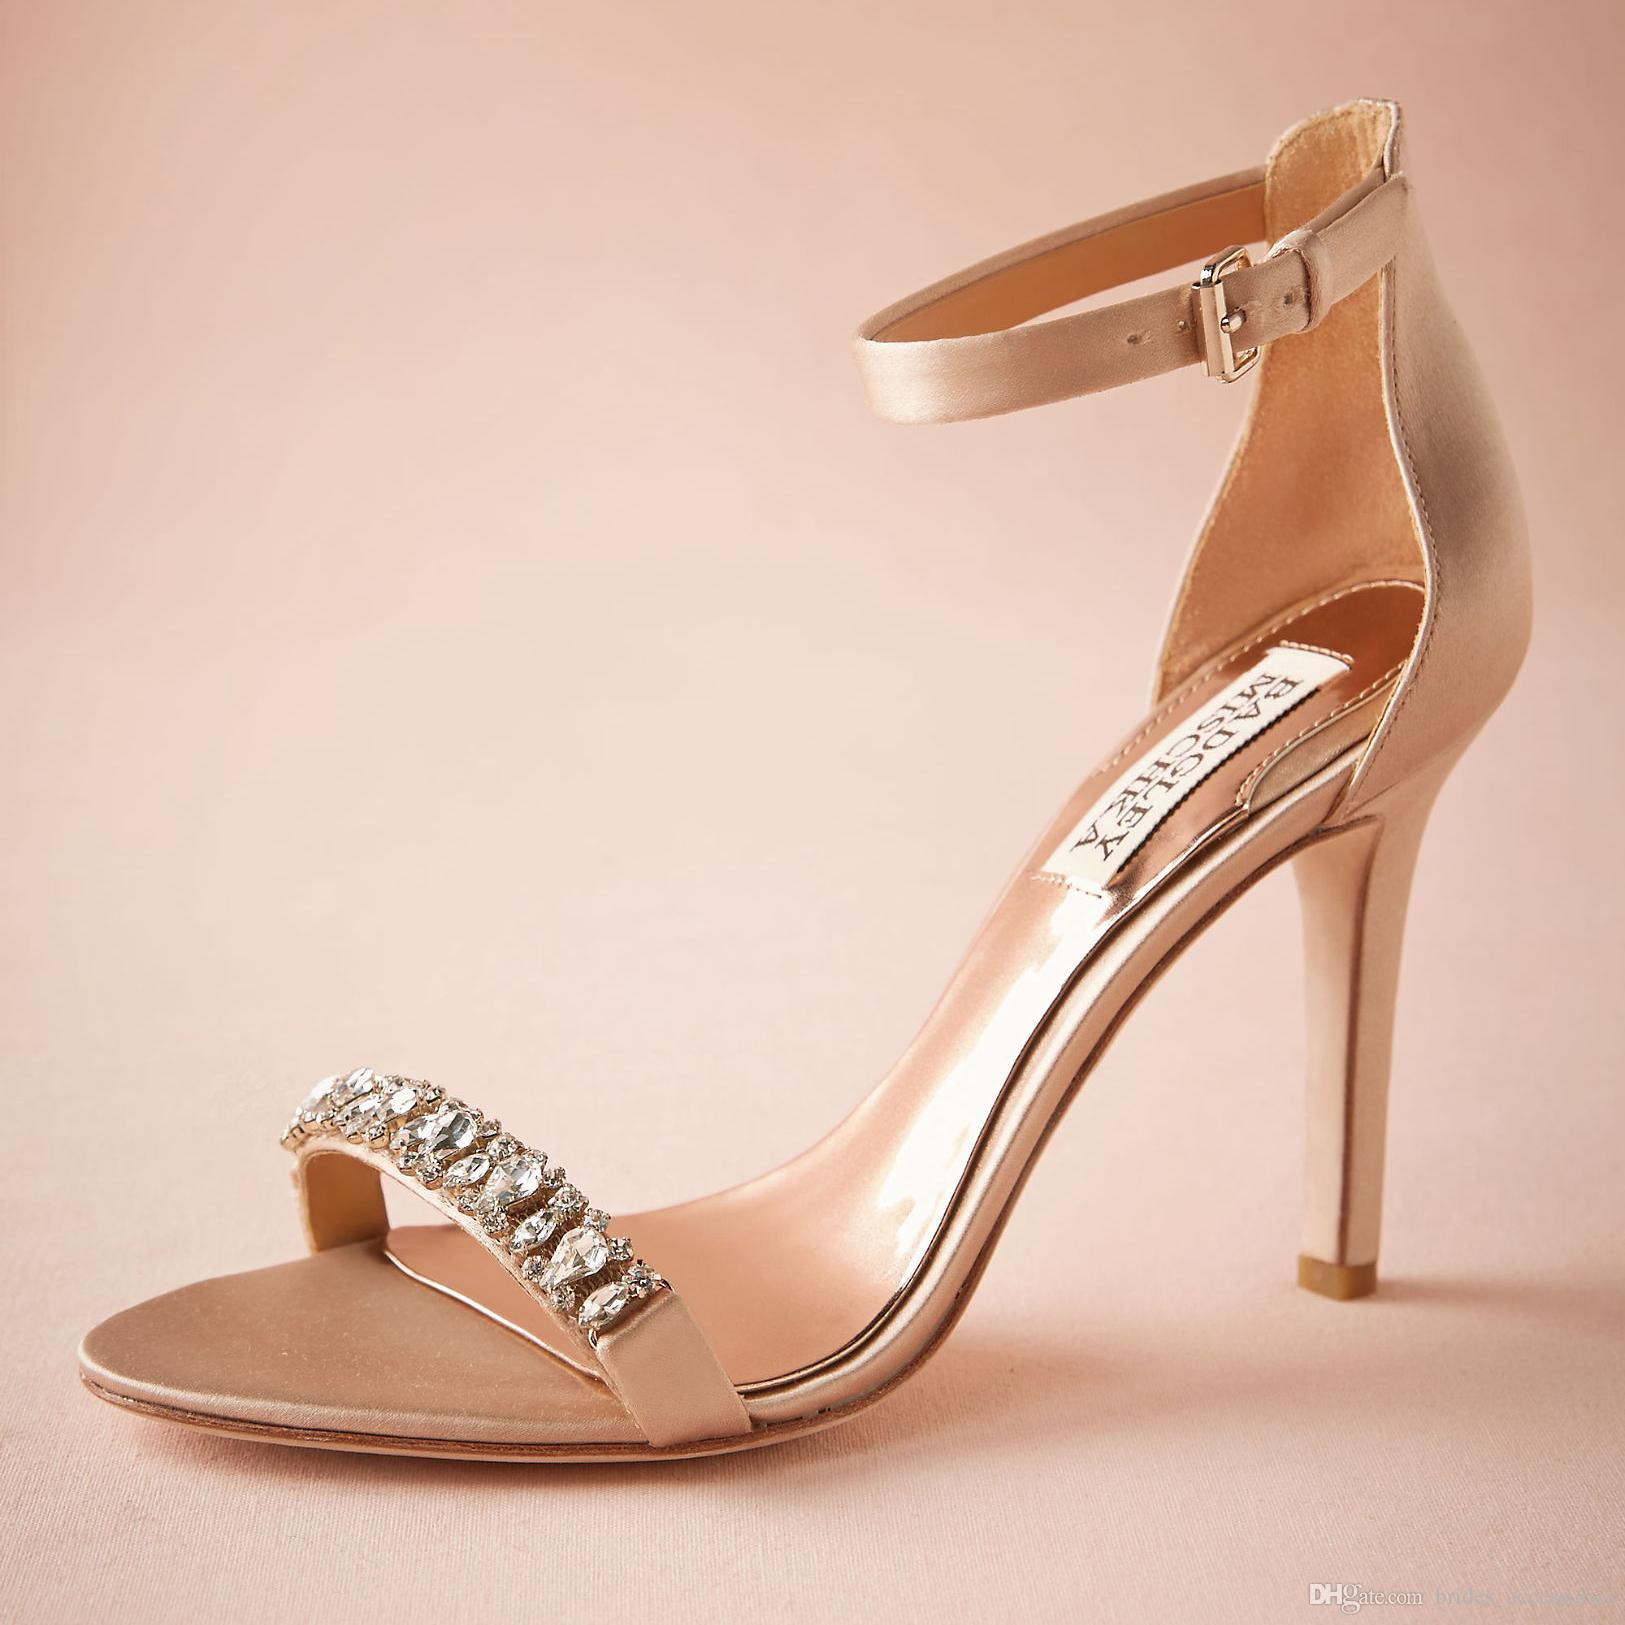 726a1a23d3f Fashion Blush Wedding Shoes 3.5 Satin Wrapped Heel Crystals Details Women  Sandal Old Hollywood Glamour Jewelry Box Heels Made To Order Cream  Bridesmaid ...